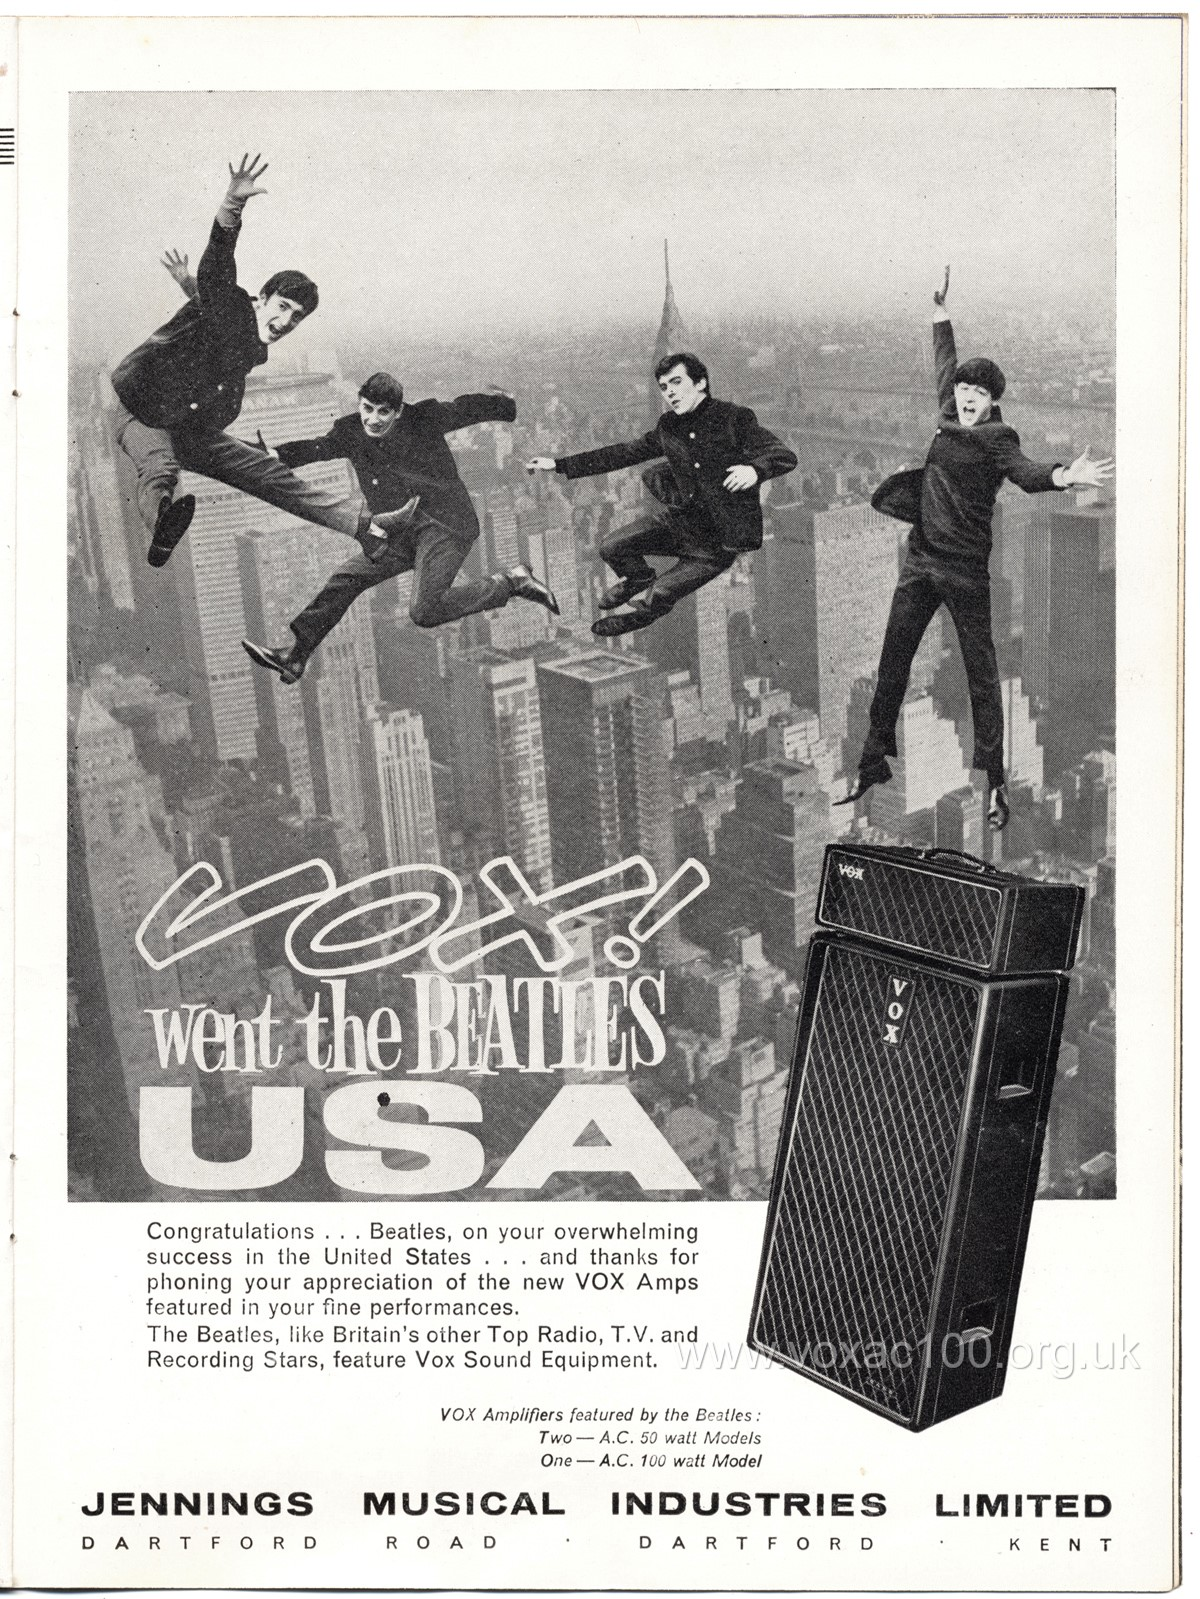 Second Vox advert for the Beatles in America, February 1964